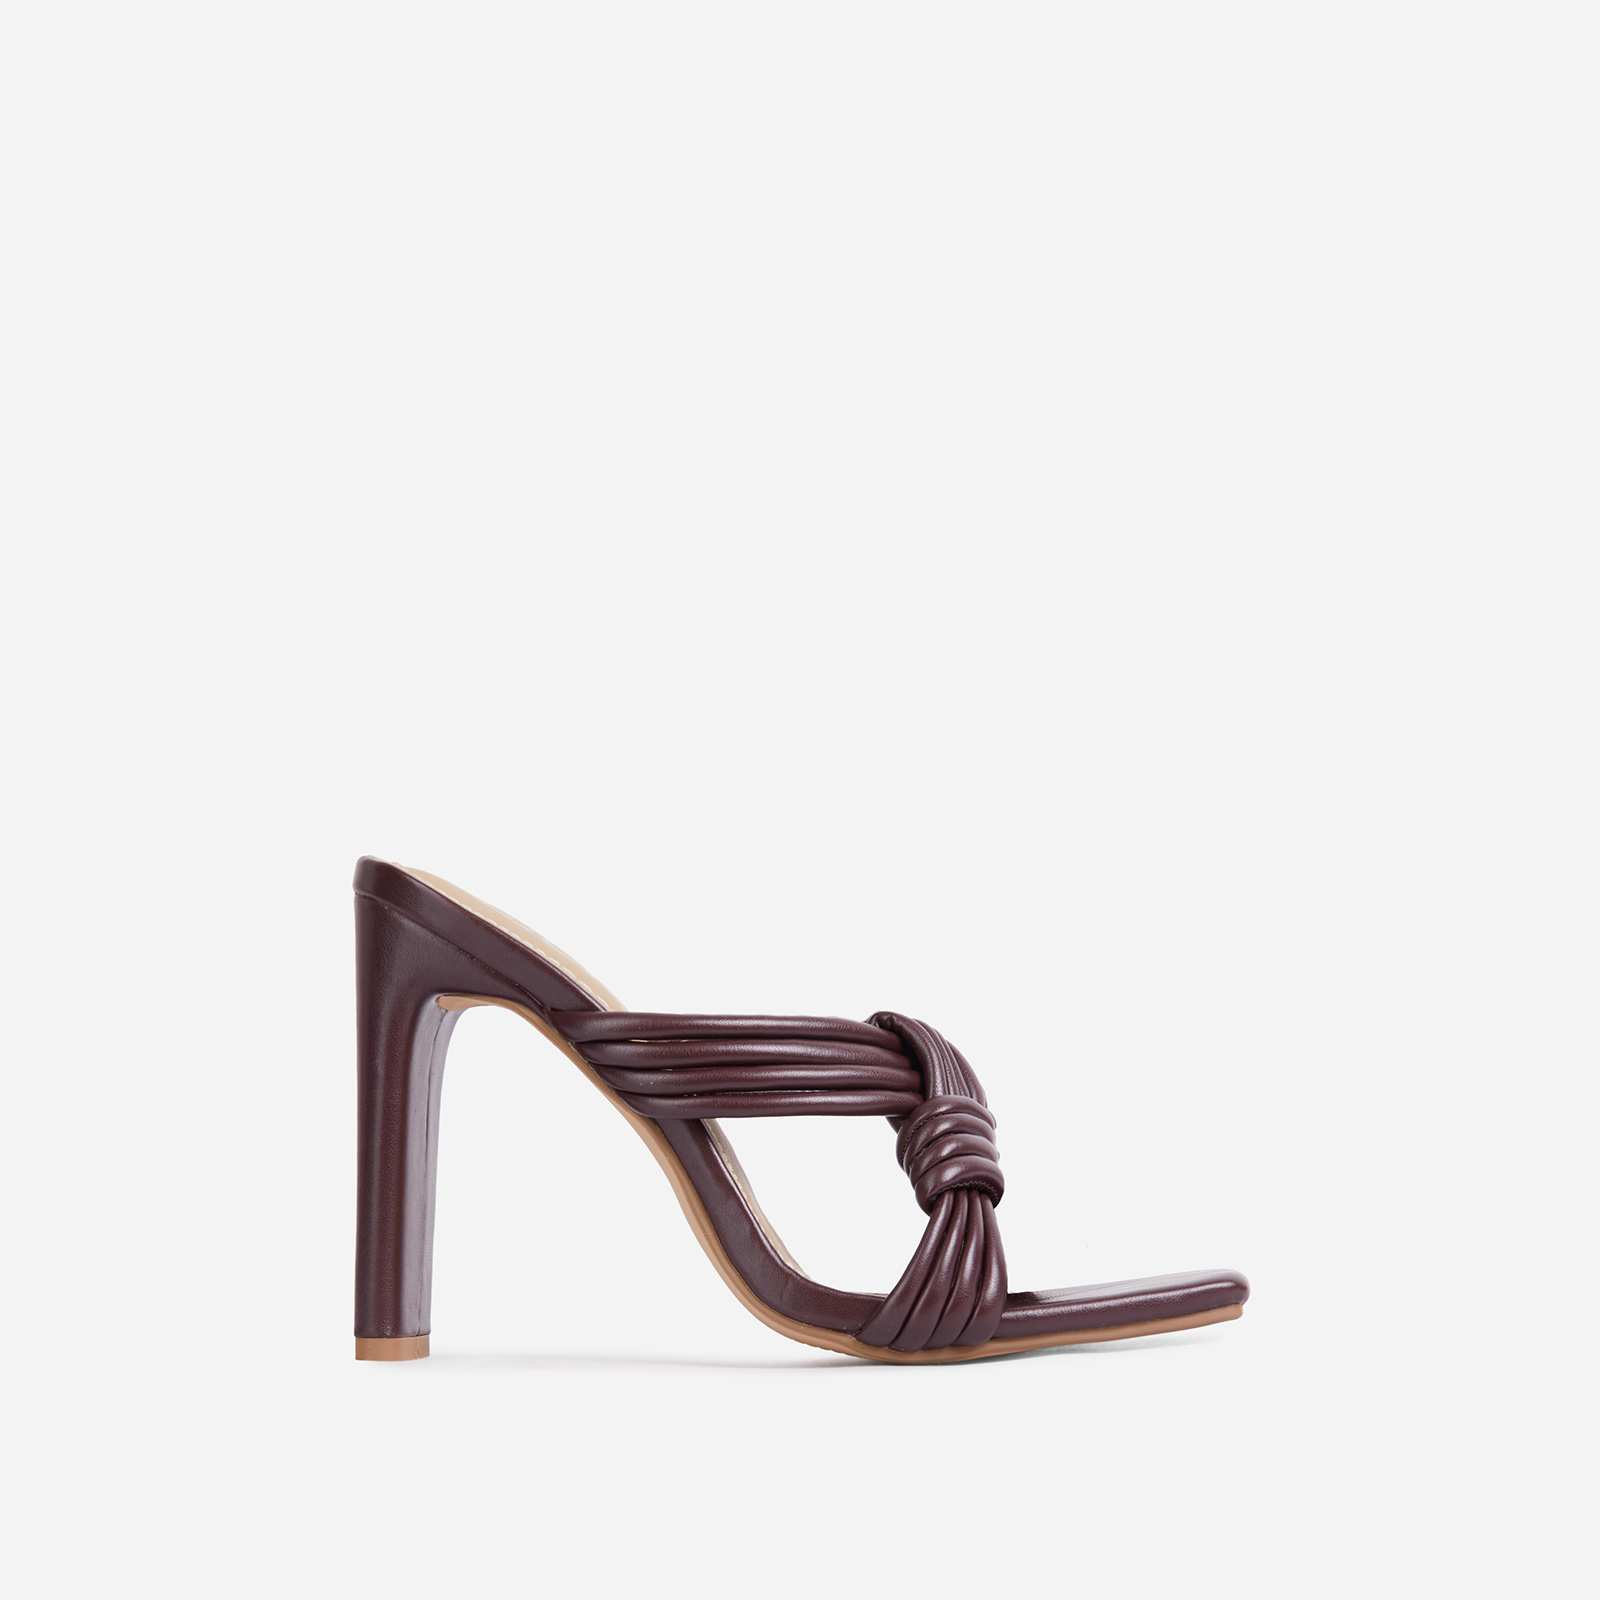 Opera Criss Cross Knotted Strap Square Open Toe Heel Mule In Dark Brown Faux Leather